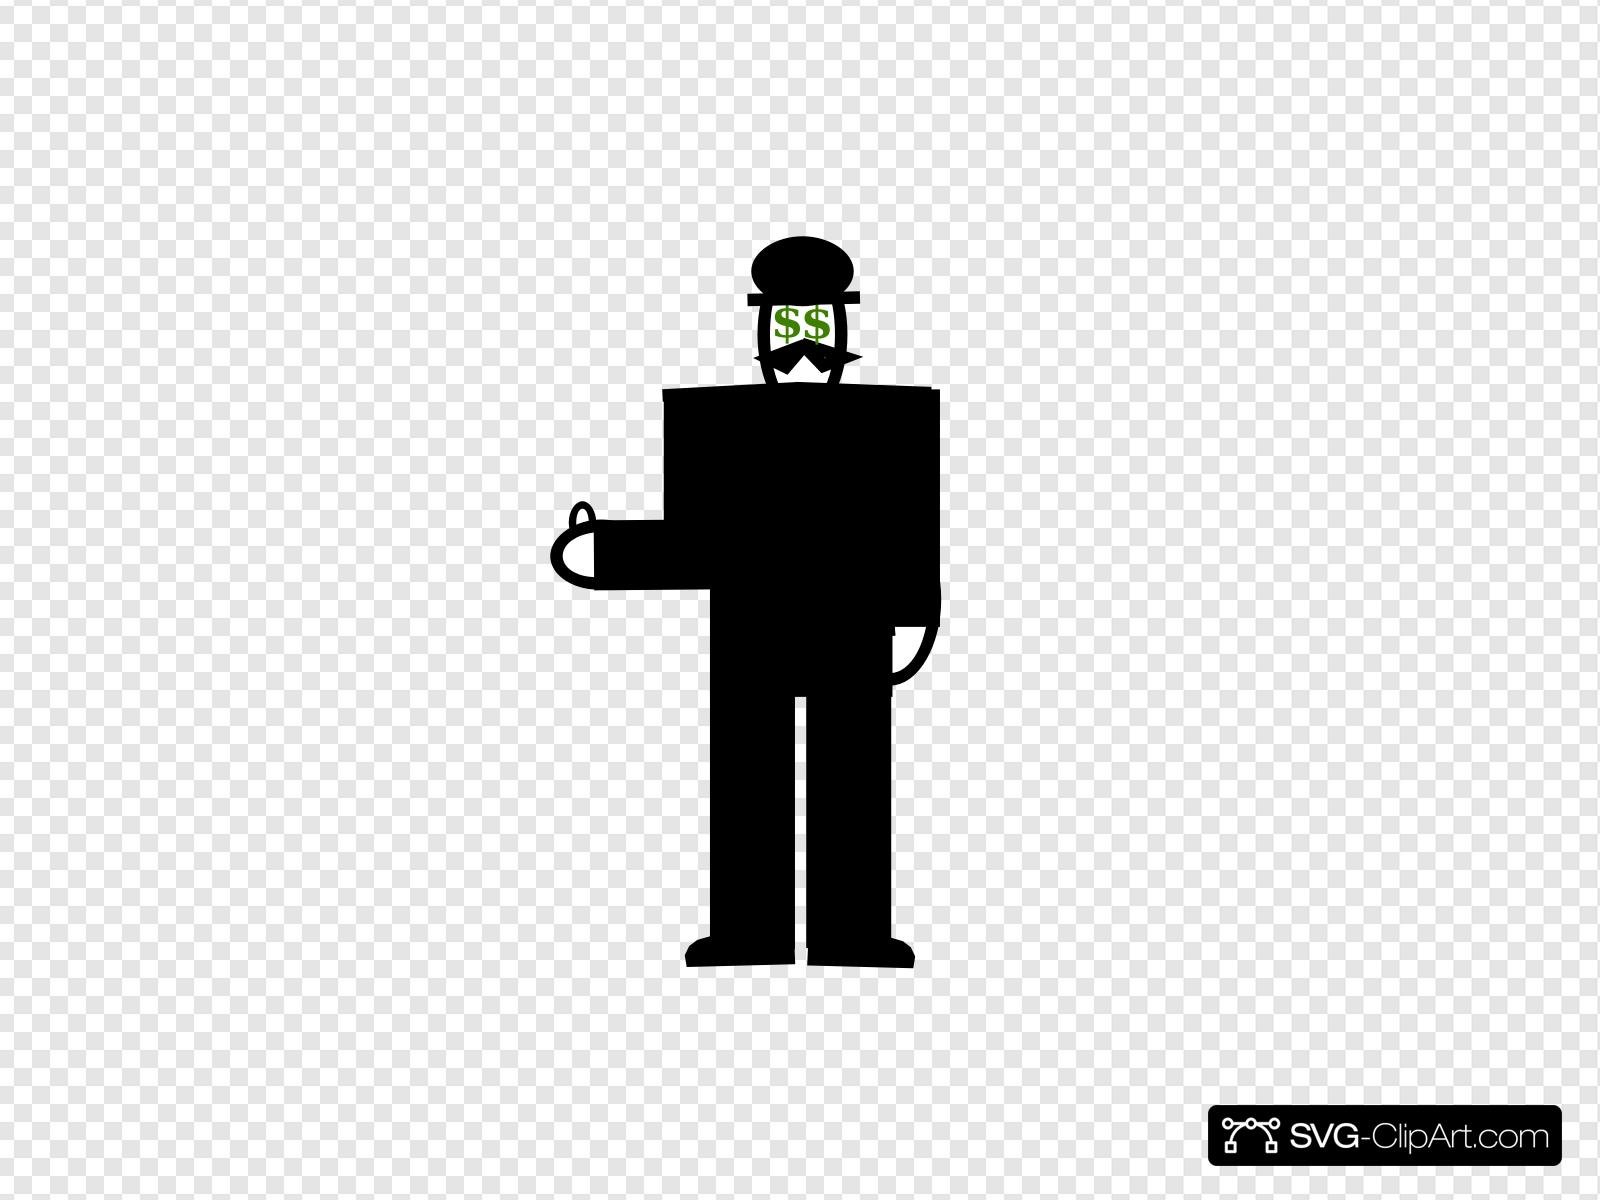 Man Thumbs Up Money Clip art, Icon and SVG.